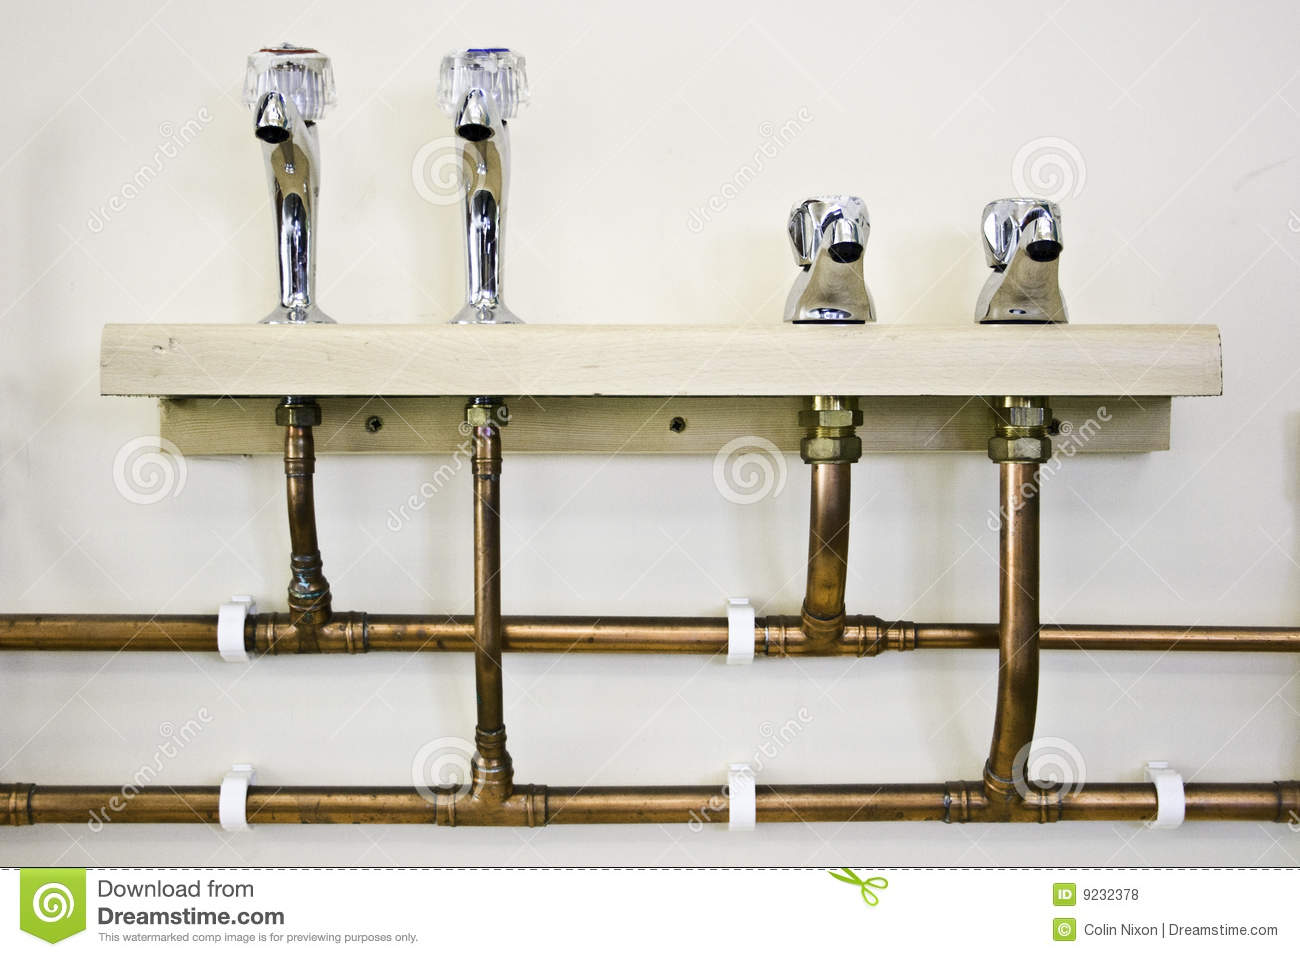 Hot And Cold Water Taps And Pipes Royalty Free Stock